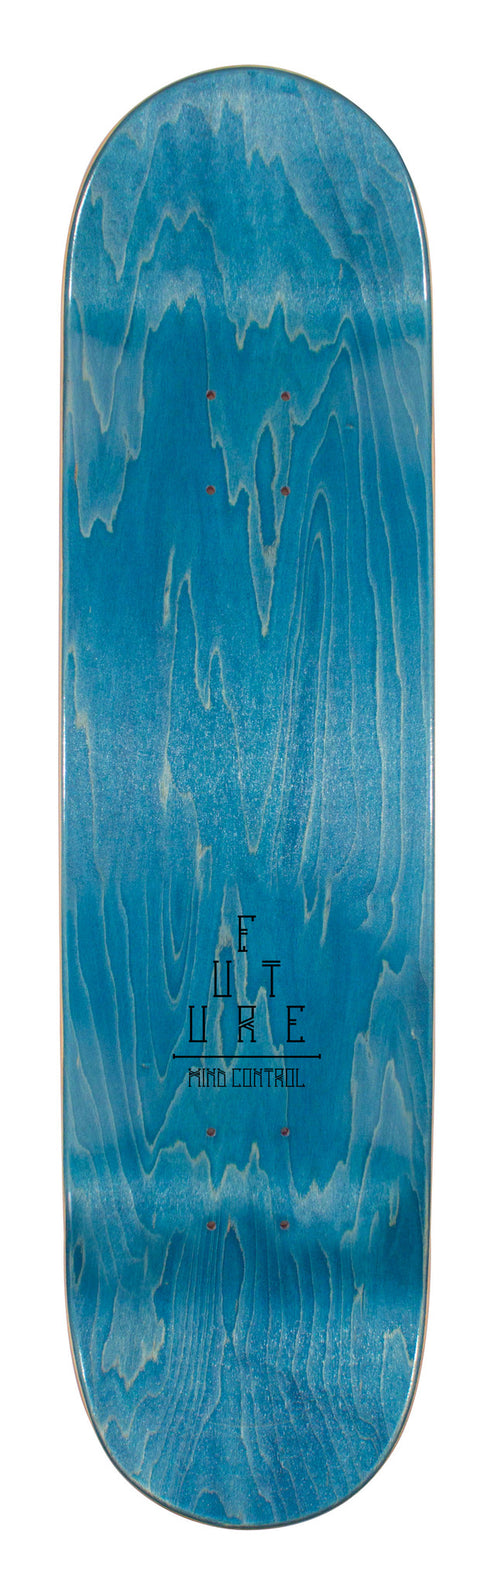 Shape Maple Future Mind Control Thiago Garcia 8.125'' Top